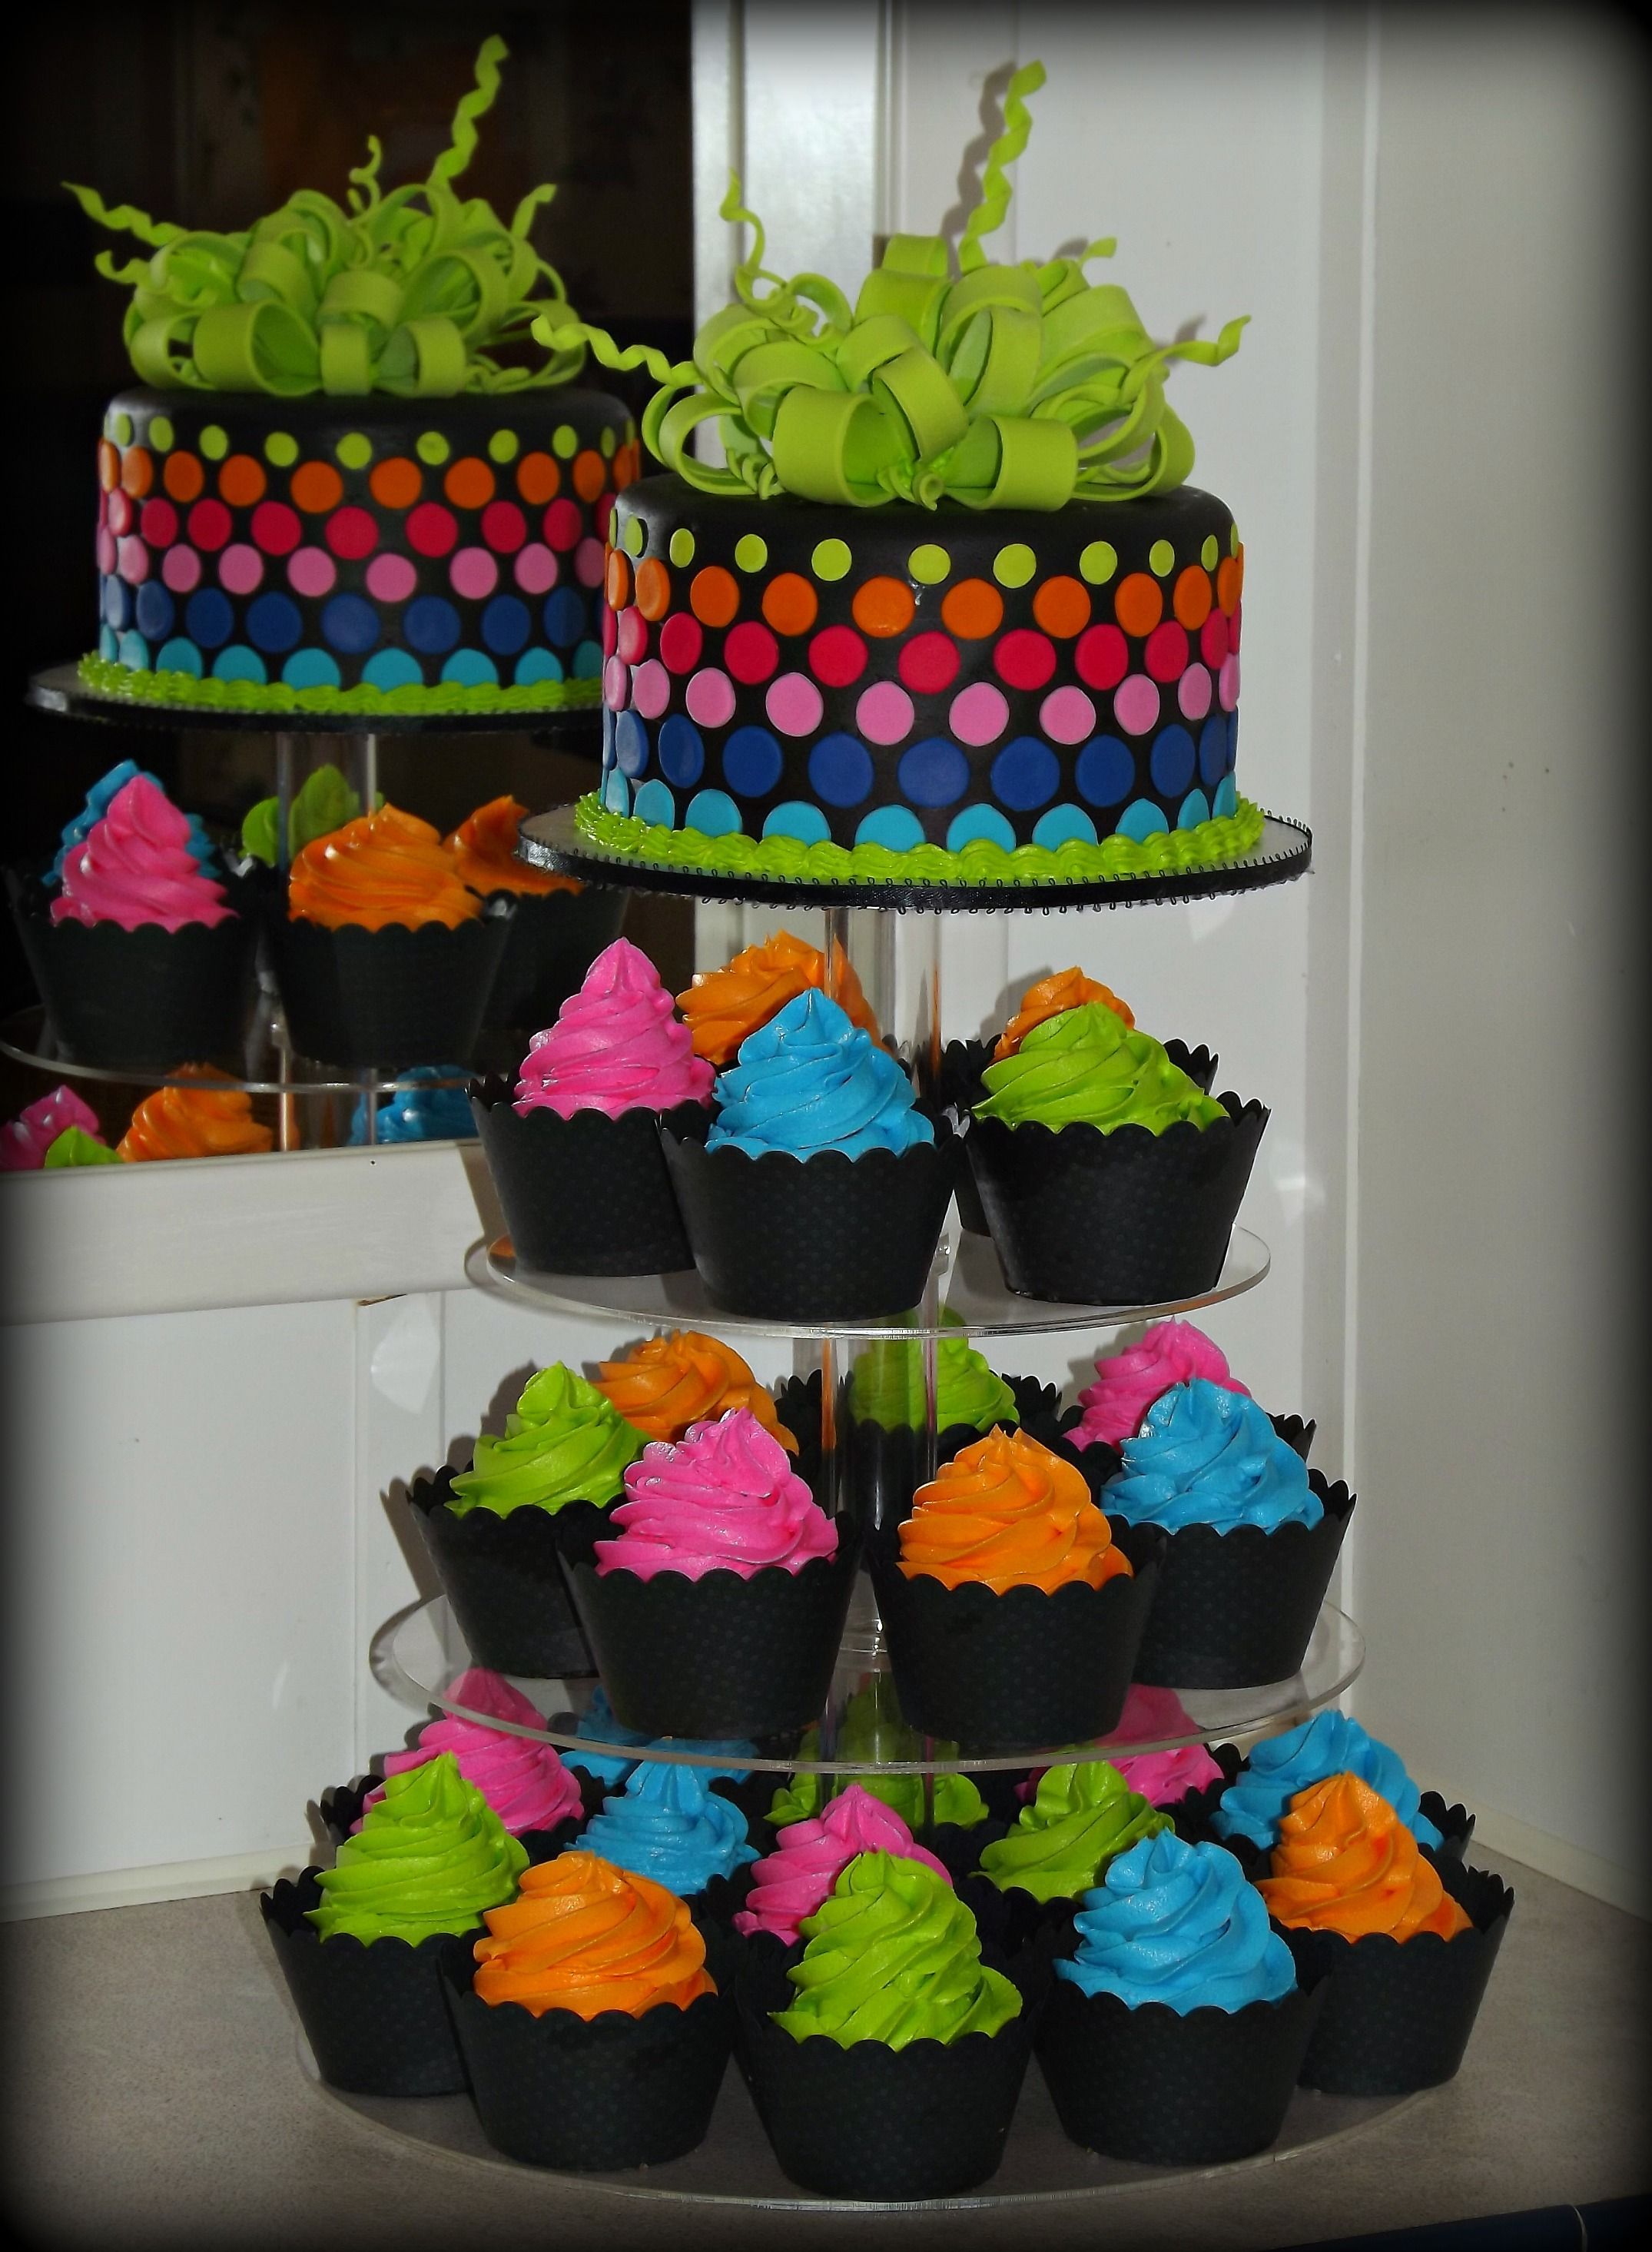 Stupendous Neon Cake And Cupcake Tower Diegos 15Th Neon Cakes Neon Birthday Cards Printable Riciscafe Filternl